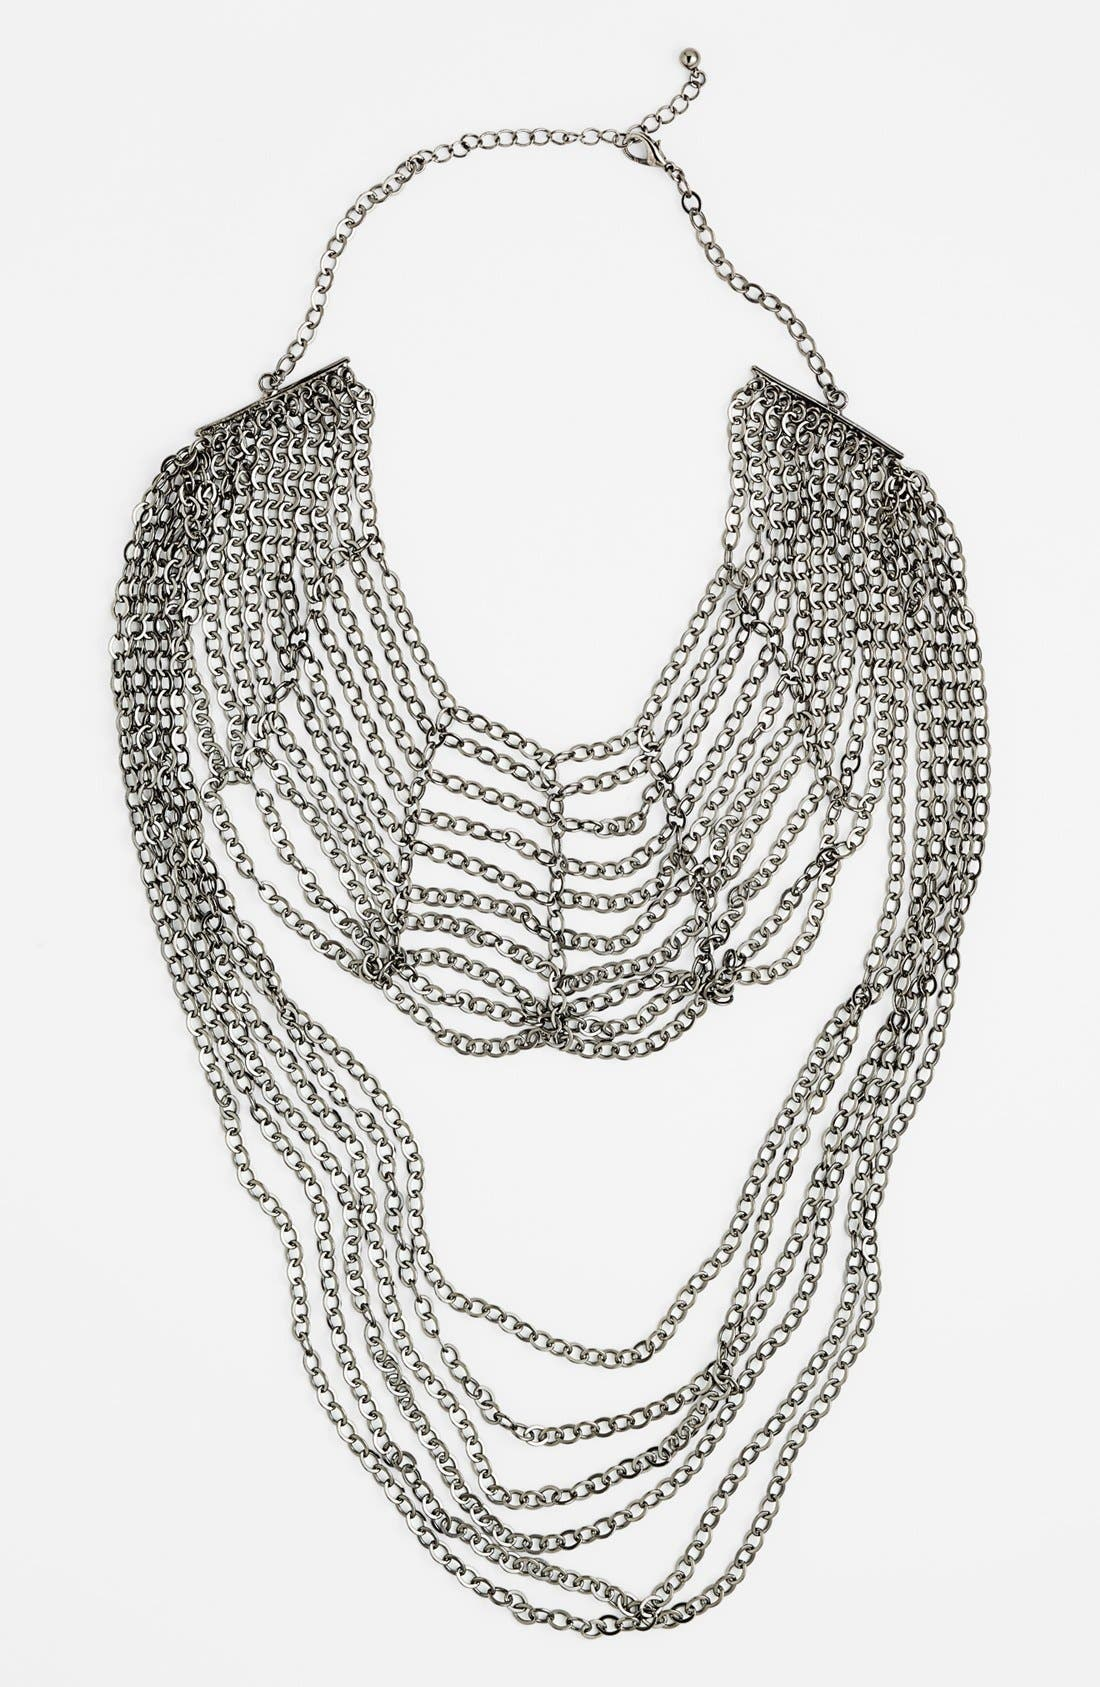 Alternate Image 1 Selected - Natasha Couture Two Tier Chain Necklace